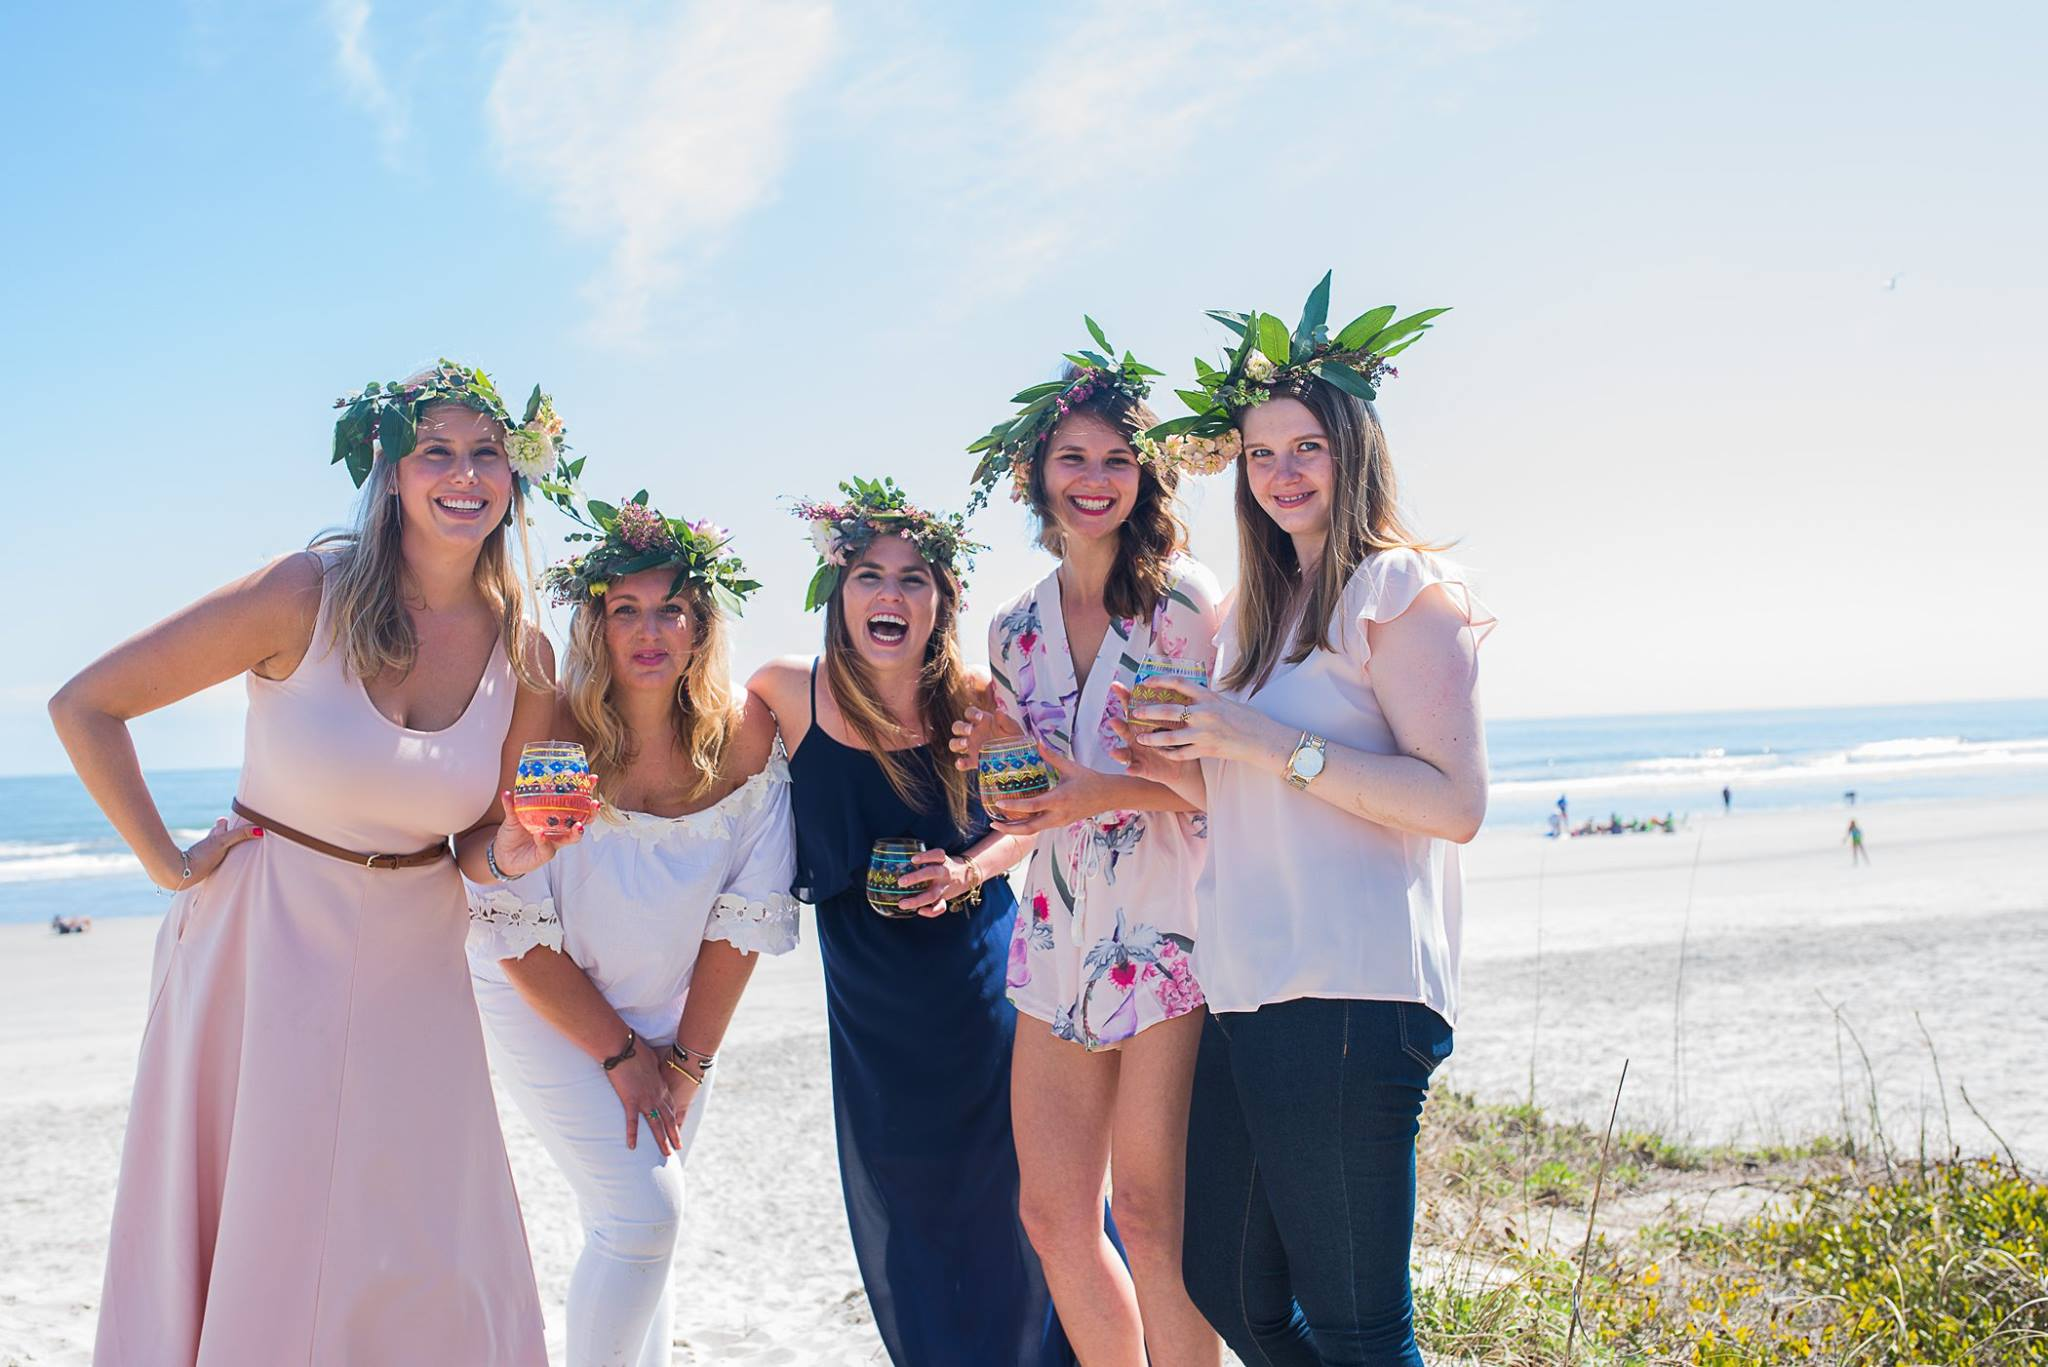 Fetes de Fleurs - Fetes de Fleurs is a flower party business prefect for bachelorette parties and ladies' weekends! The most popular package and workshop offered is the flower crown party. A flower party host will come to your rental or on site at select wineries to set up a flower bar with beautiful flowers and greenery. You will learn through a workshop on how to make flower crowns, then the flower crowns are yours to wear!Price: $40/person for pre-made crown and ready for you$55/person for personal flower crown workshop May be subject to additional fees